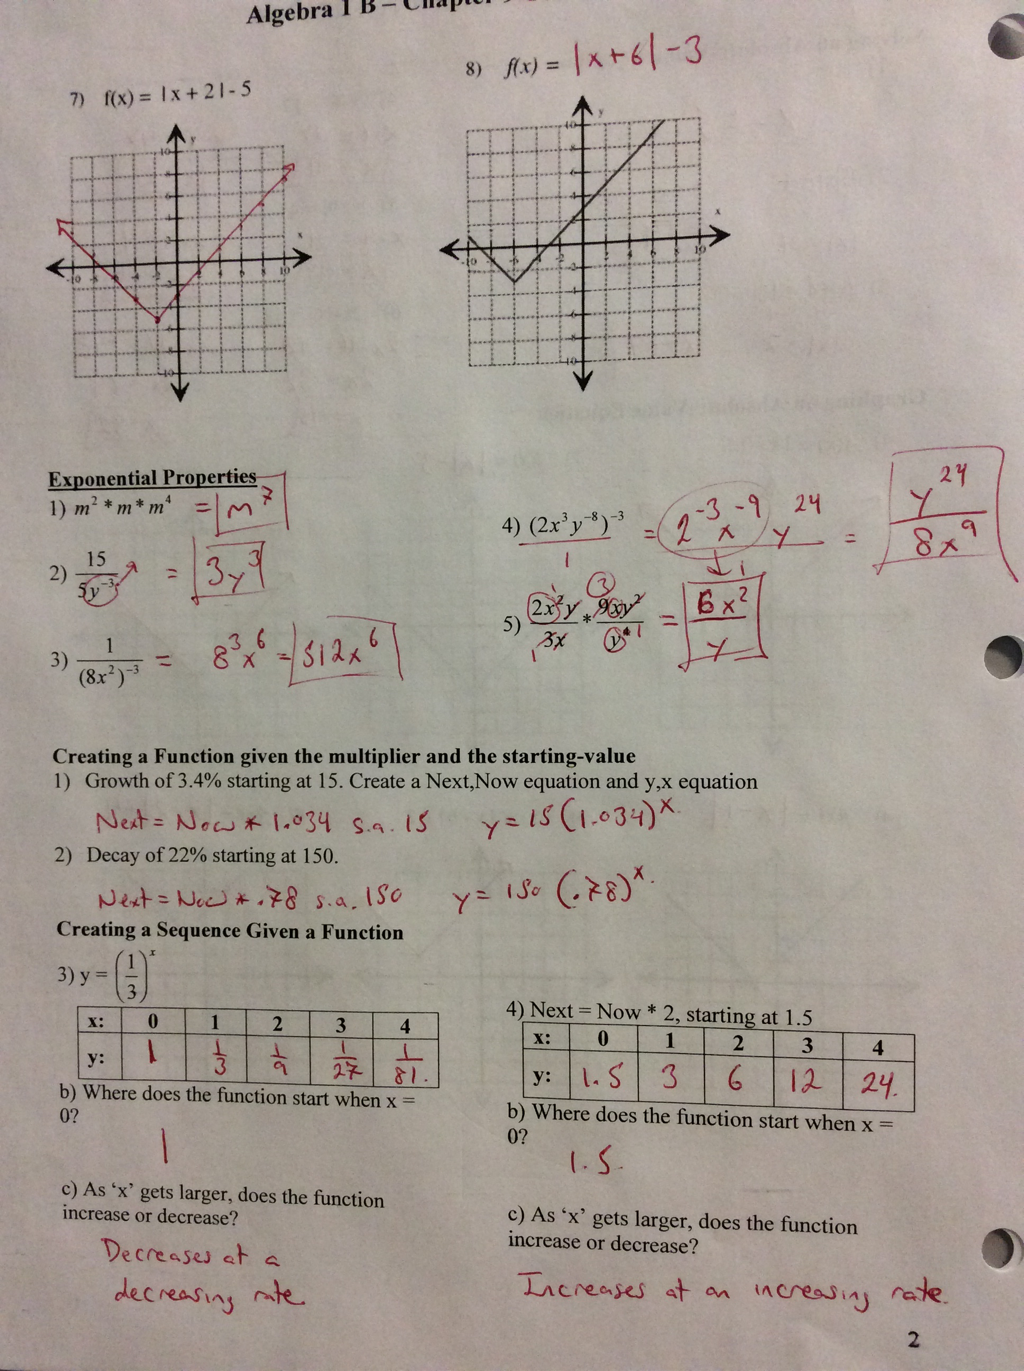 worksheet Exponential Functions Worksheet Algebra 1 alg 1b 9 exponential functions andrew busch summit picture